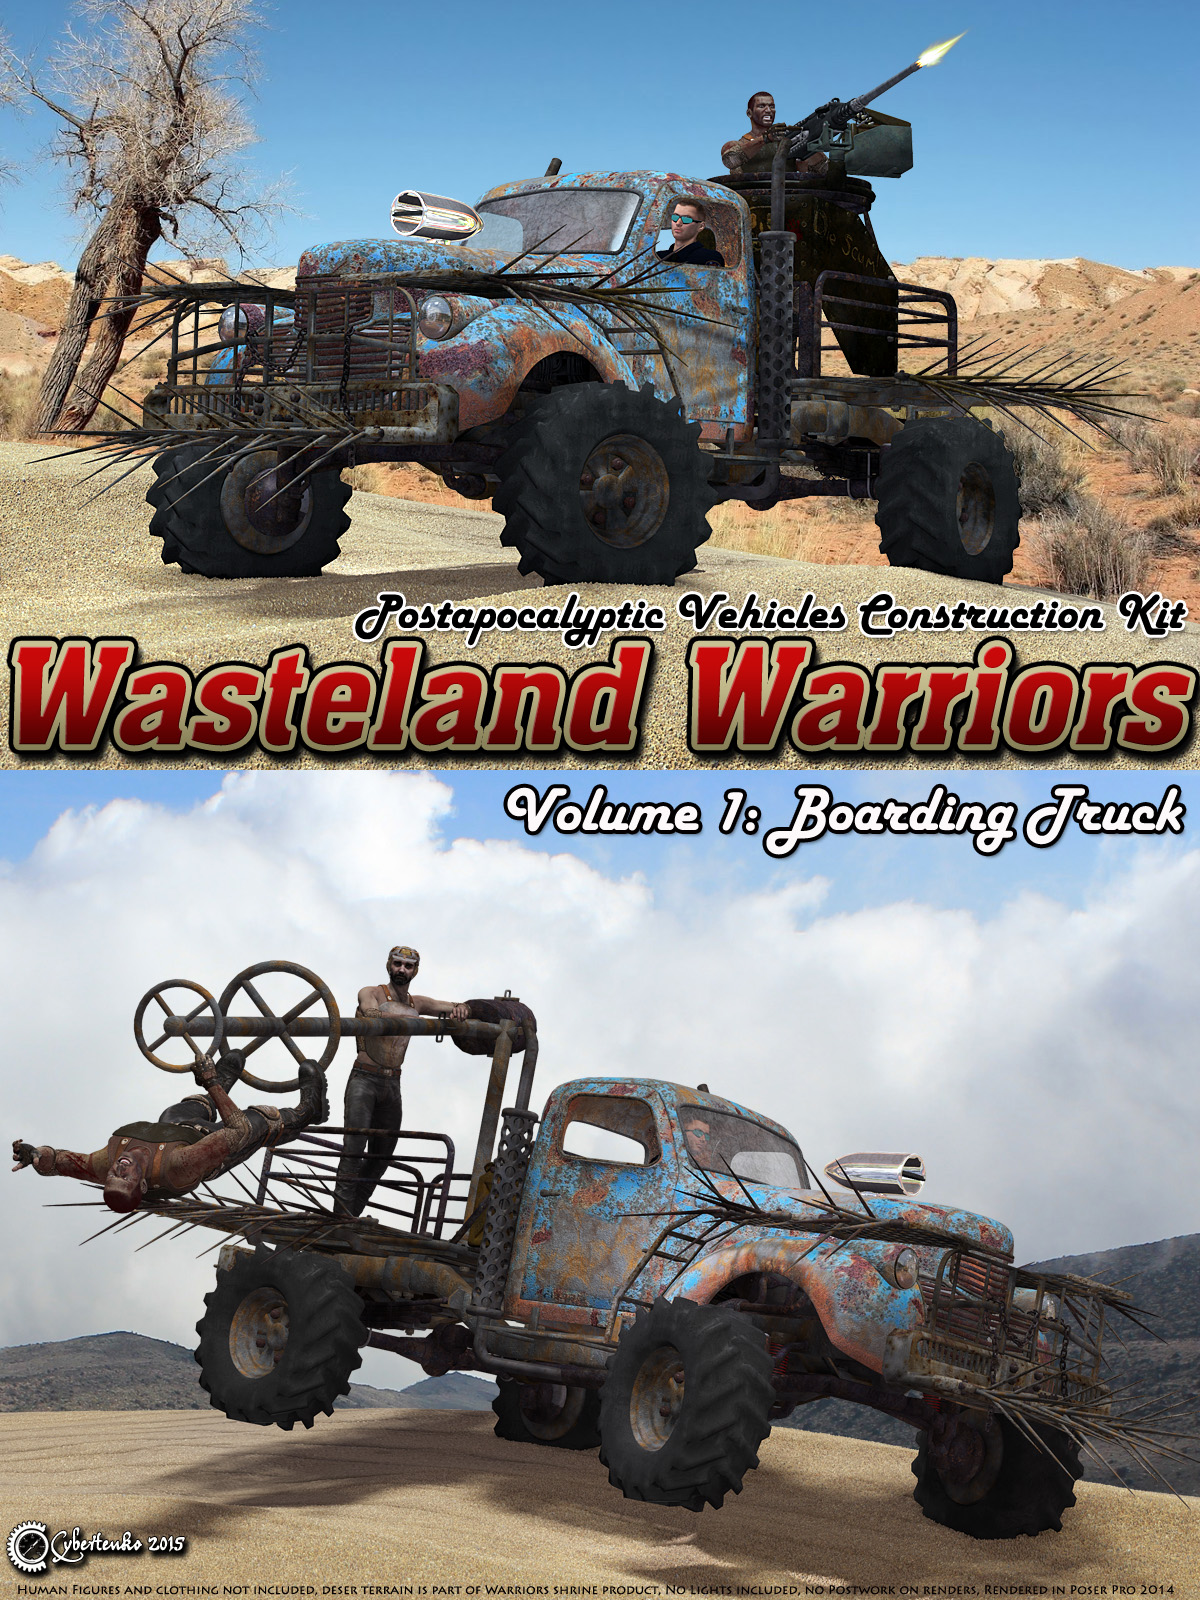 Wasteland Warriors - Boarding Truck